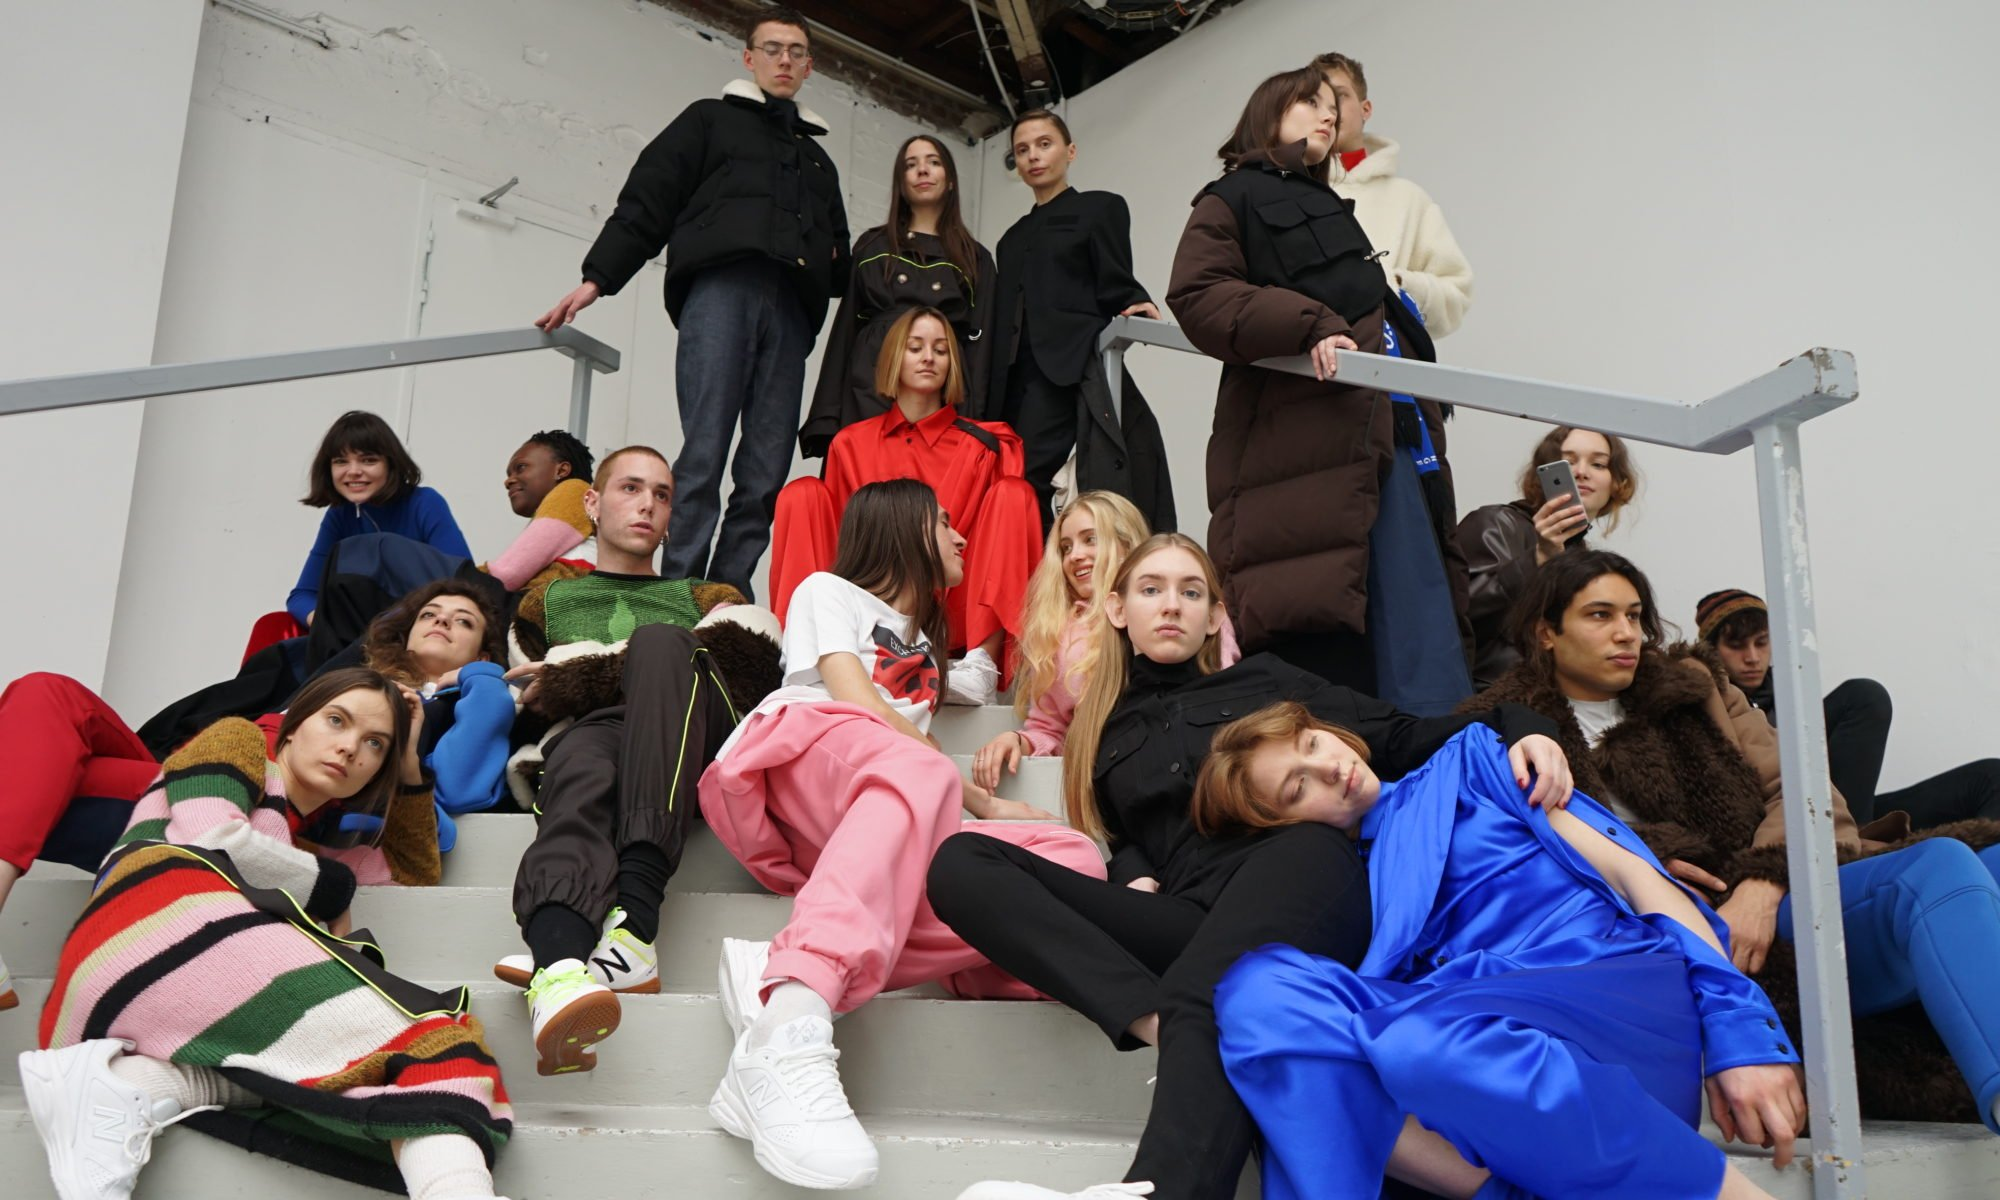 New Borders, New Boundaries: Fashion in a Shifting World